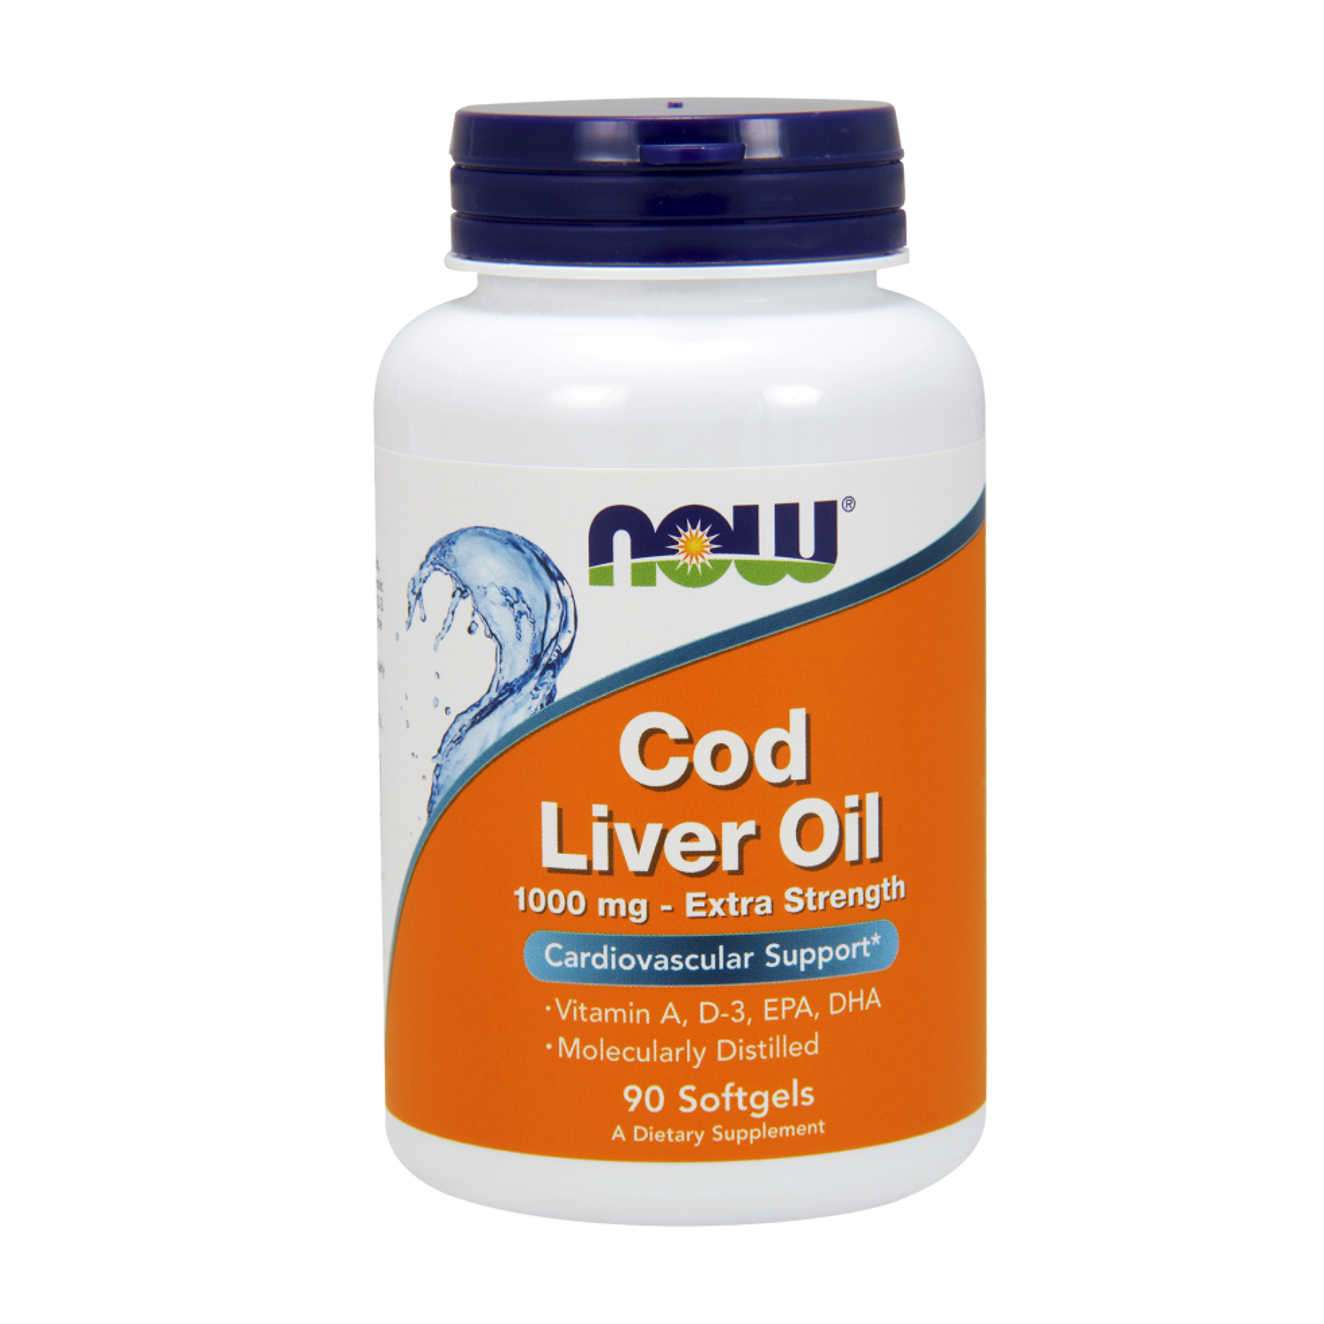 COD LIVER OIL 1000mg - 90 softgels